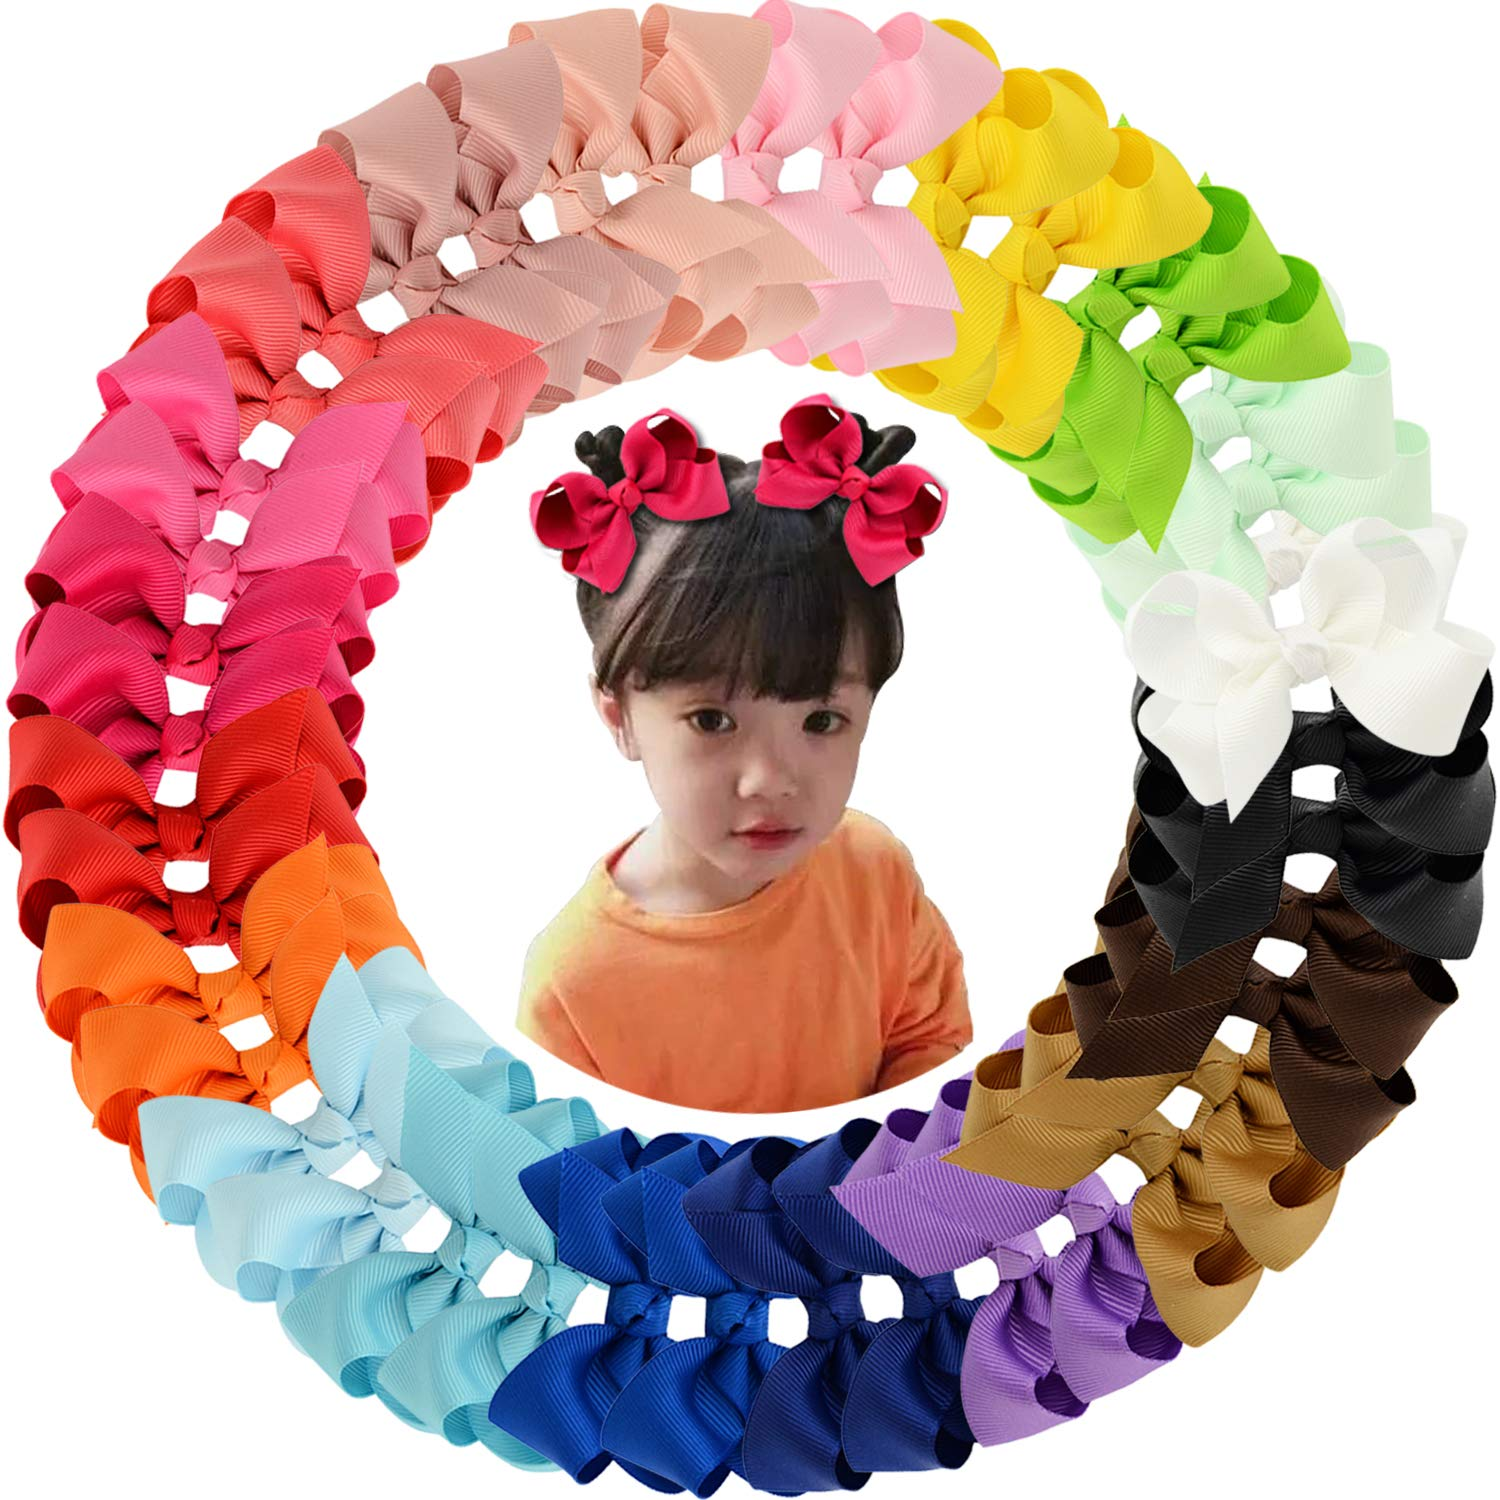 40pcs 3'' Grosgrain Ribbon Hair Bow Alligator Clips Hair Accessories for Baby Girls Infants Toddler Teens Kids 20 Colors in Pairs